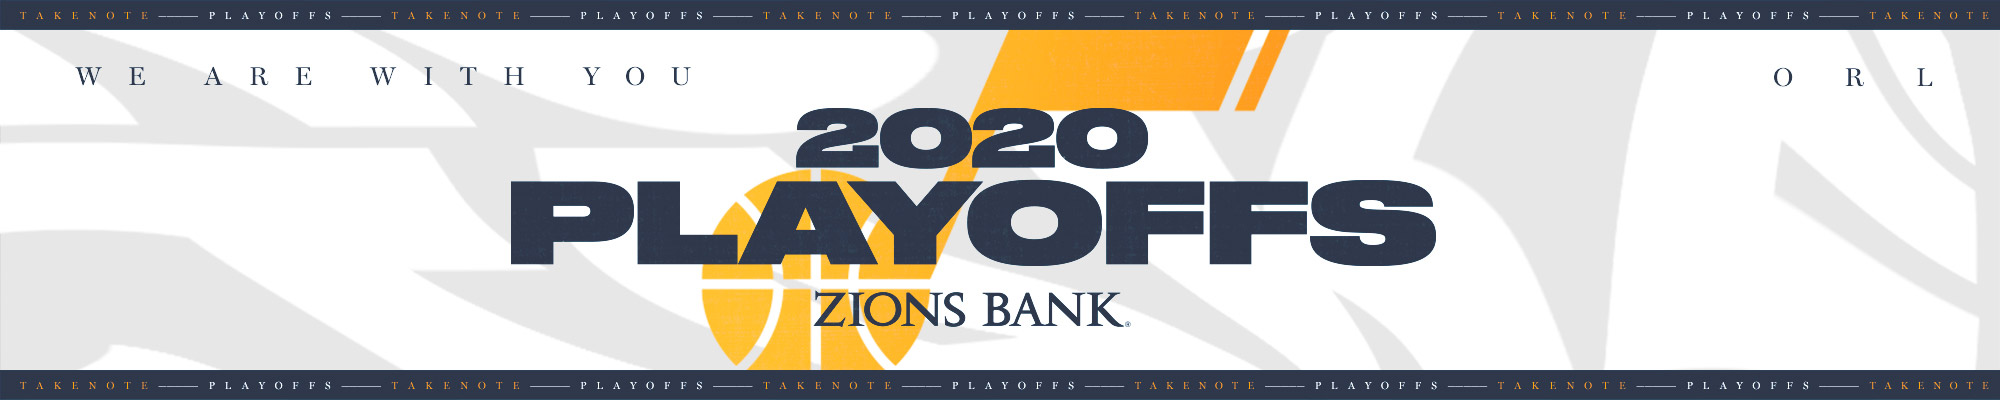 2020 Playoffs Presented by Zions Bank